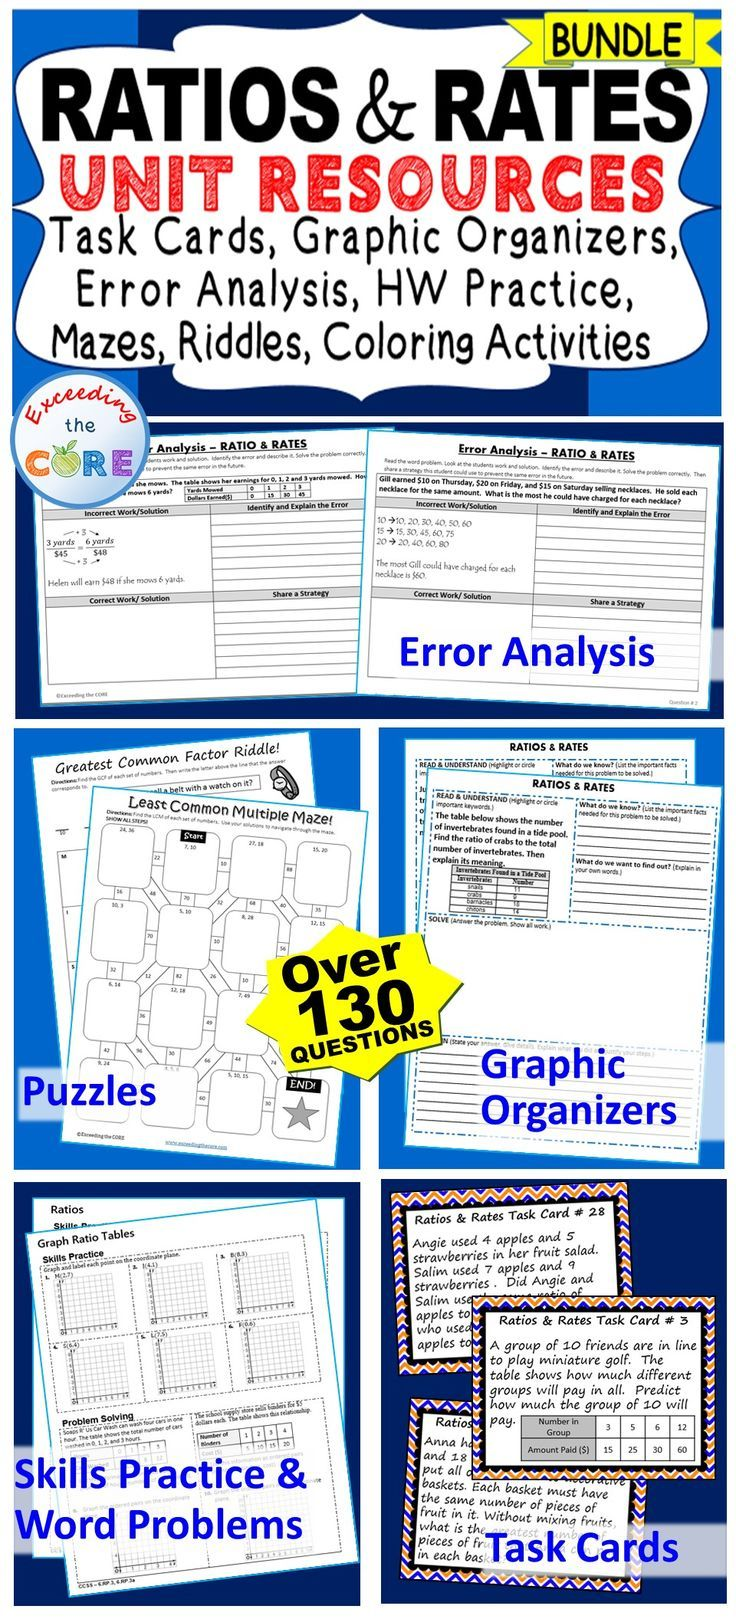 I use this RATIOS AND RATES BUNDLE every year with my students. It includes 40 task cards, 10 error analysis activities, 10 problem solving graphic organizers, 5 practice worksheets, 6 puzzles (over 130 questions). Perfect for warm-ups, spiral review, math centers, assessment prep, exit tickets and homework. Topics : Greatest Common Factor, Least Common Multiple, Ratios, Unit Rate & Unit Price, Equivalent Ratios, Ratio Tables , Rate Problems 6th grade math common core 6.RP.1, 6.RP.2, 6.RP.3.